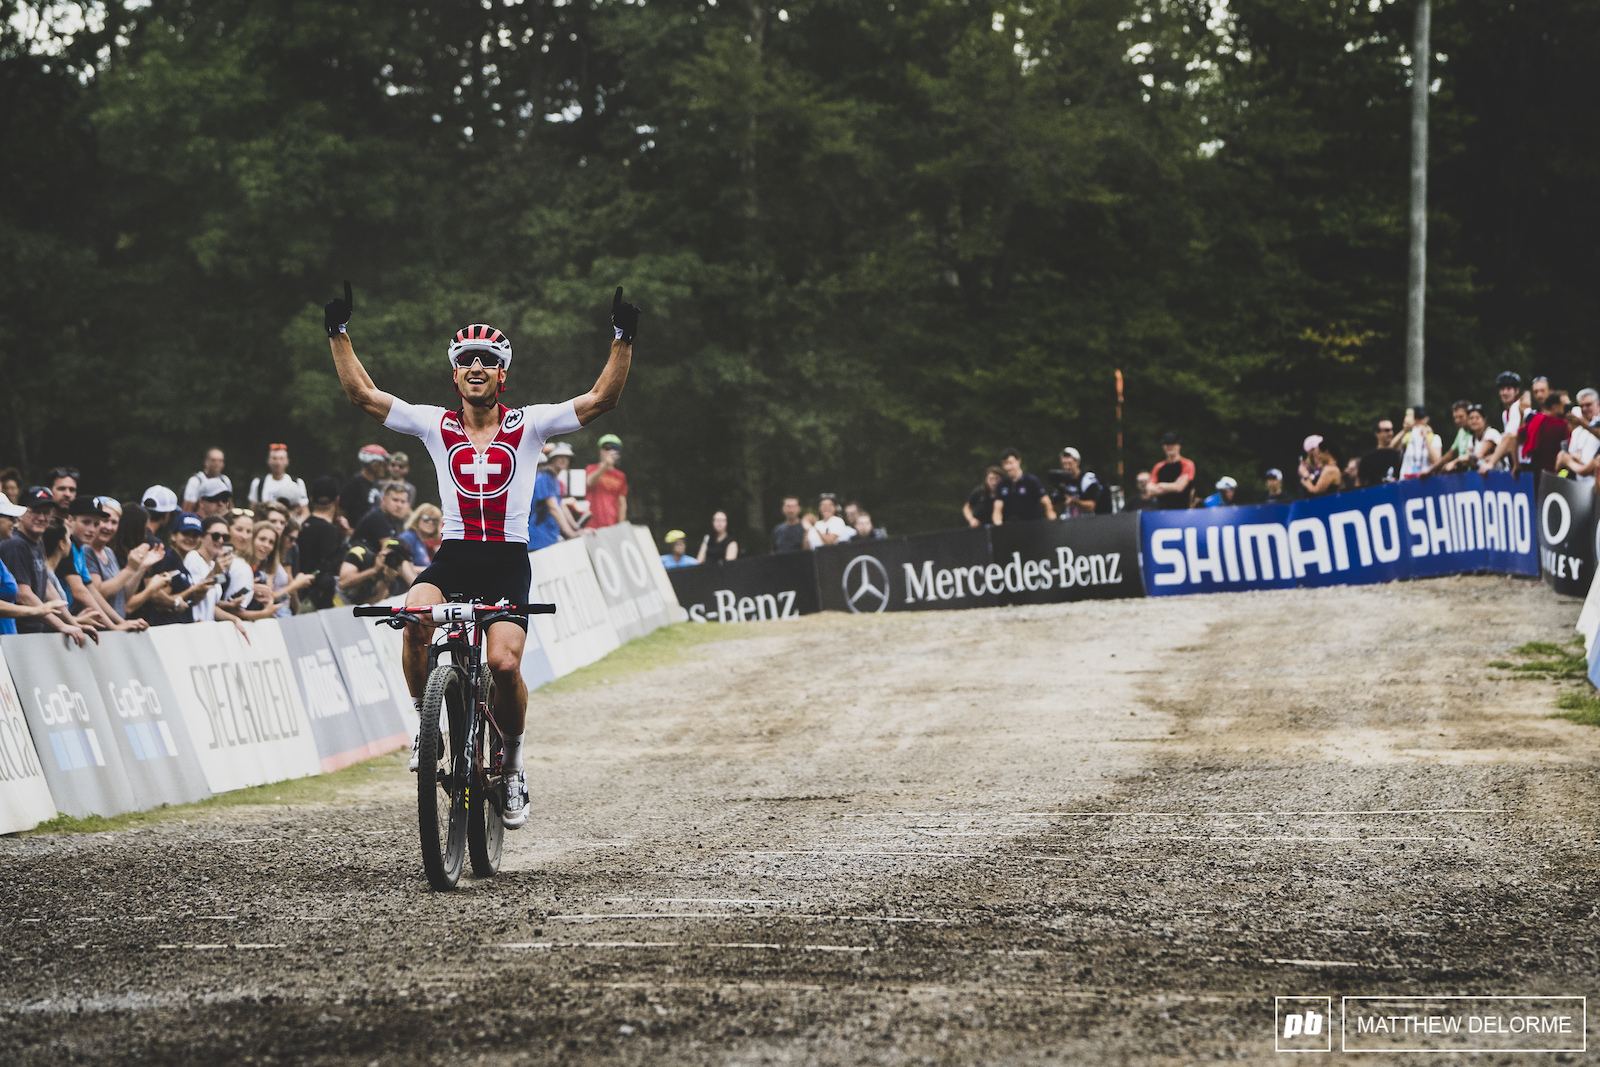 Nino Schurter brings the gold home for team Swiss.